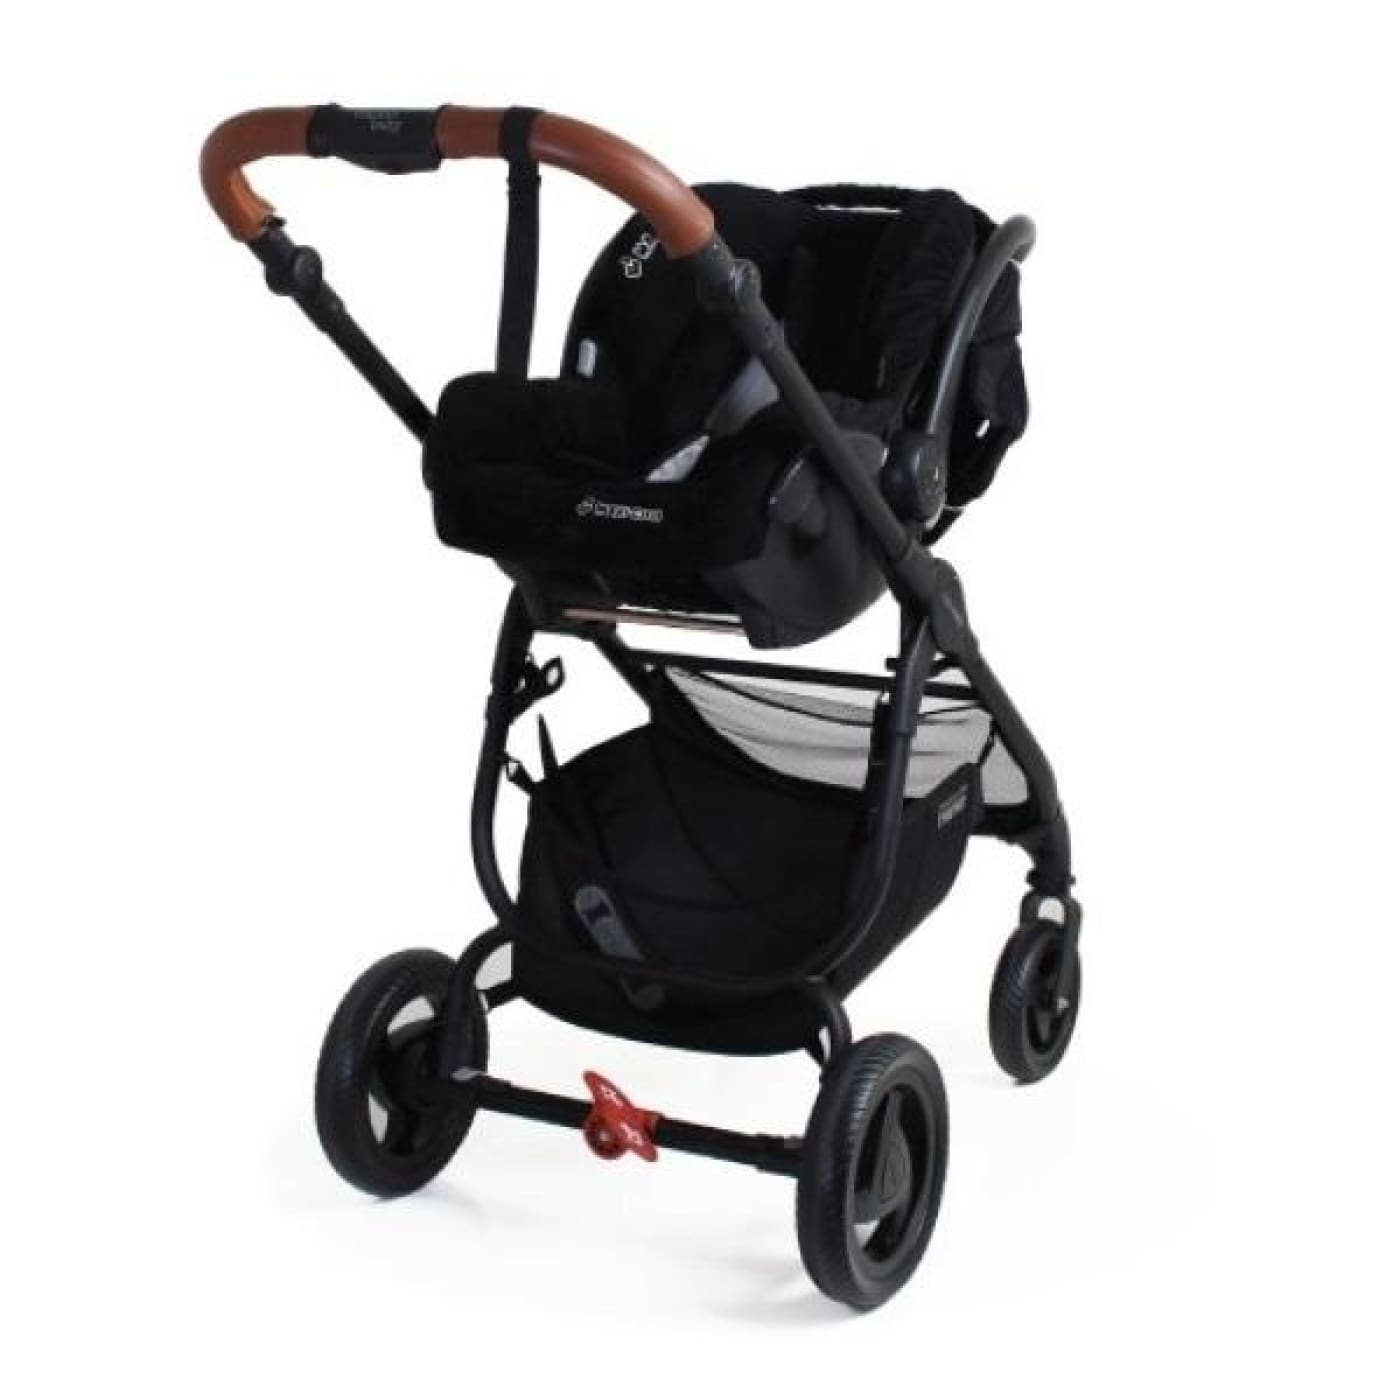 Valco Baby Maxi Cosi Adaptor for Ultra Trend - PRAMS & STROLLERS - ADAPTORS FOR TRAV SYS